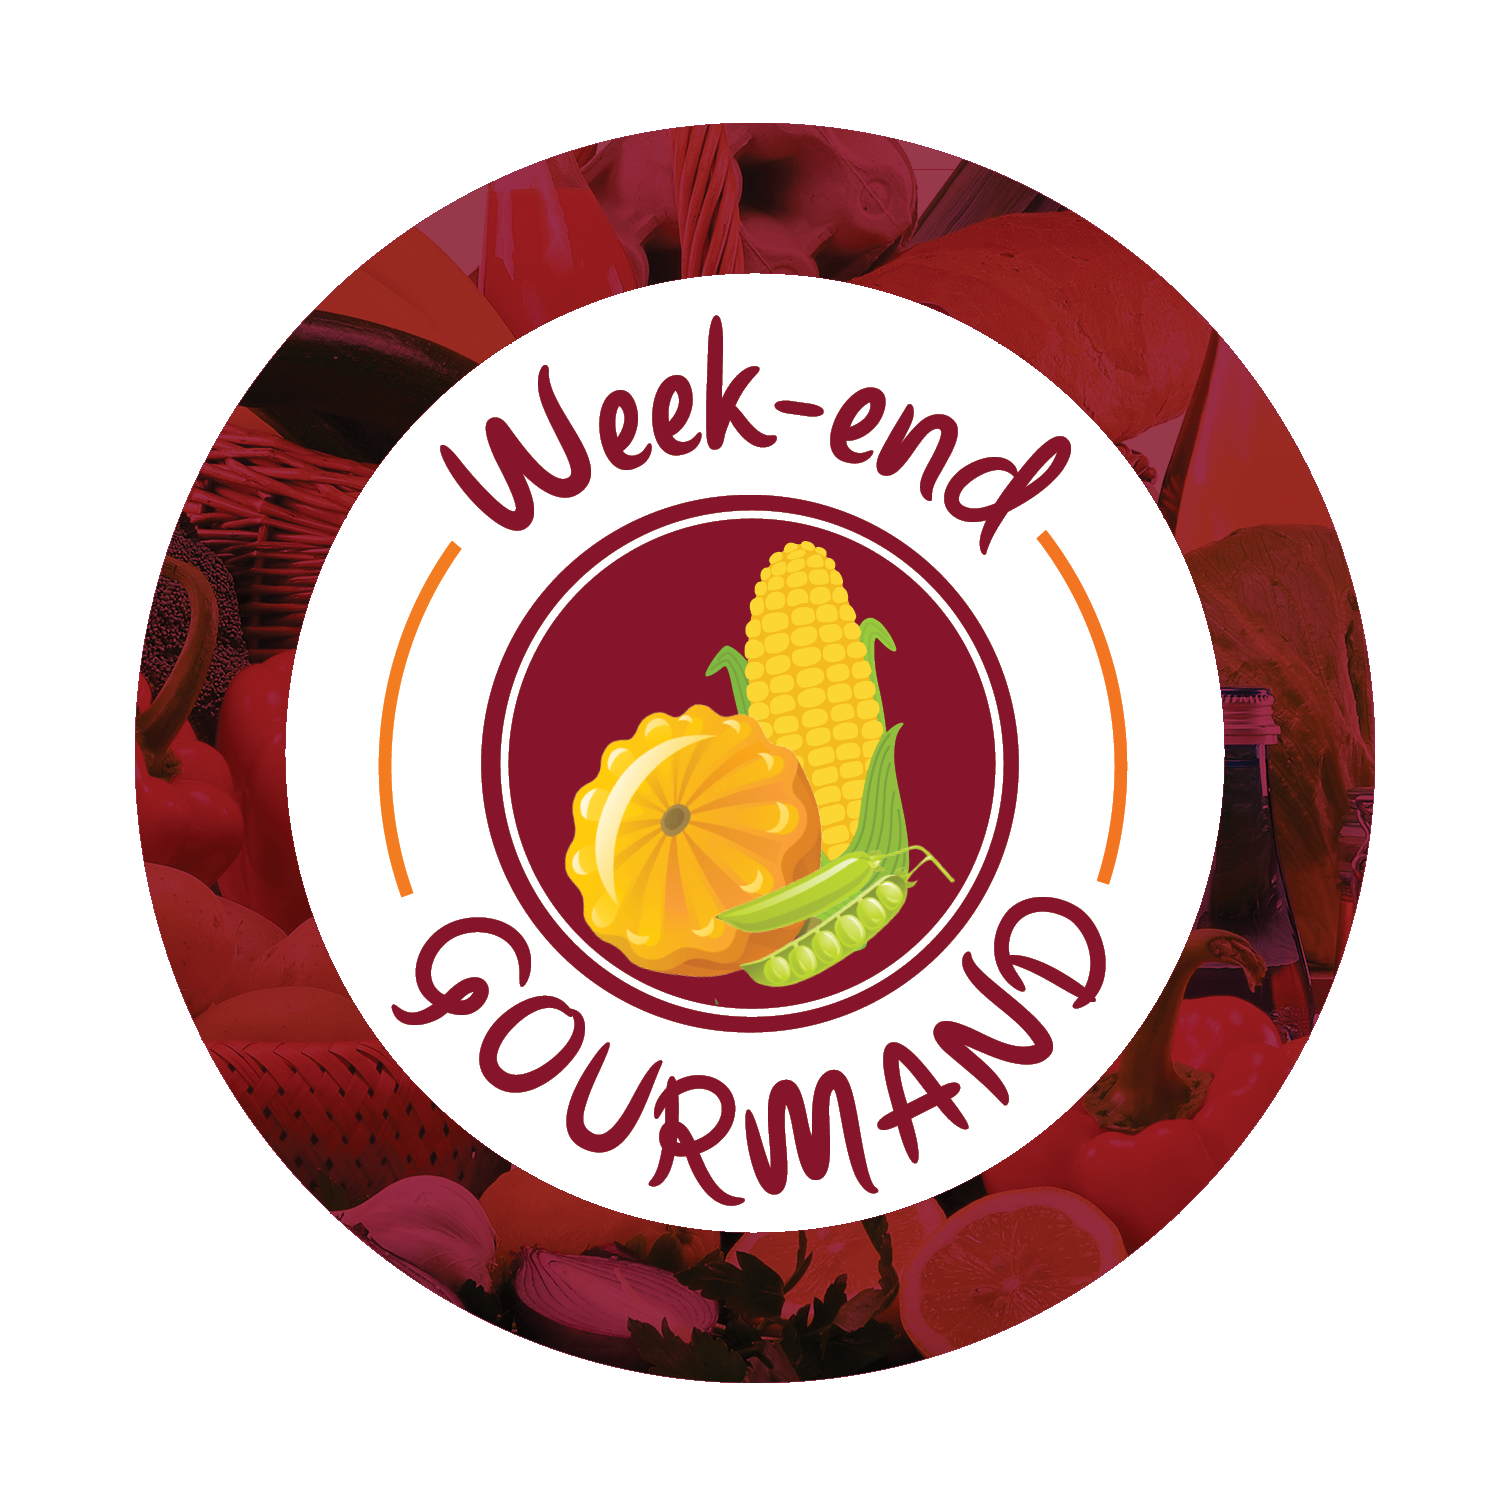 Logo du week-end Gourmand.